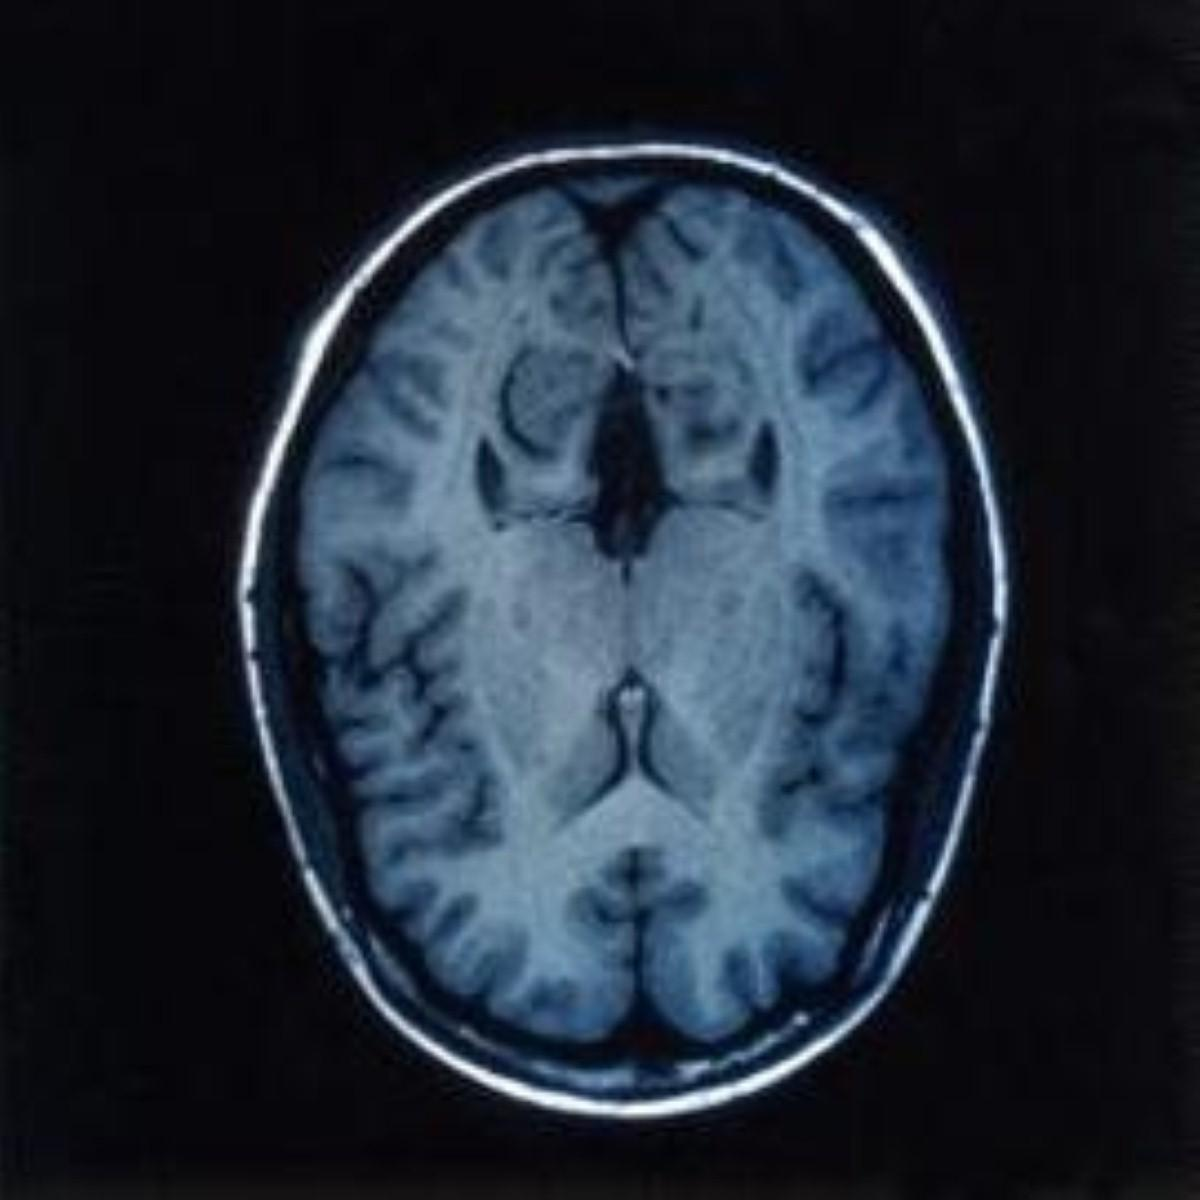 Cell signalling may prevent brain cancer cell growth and migration